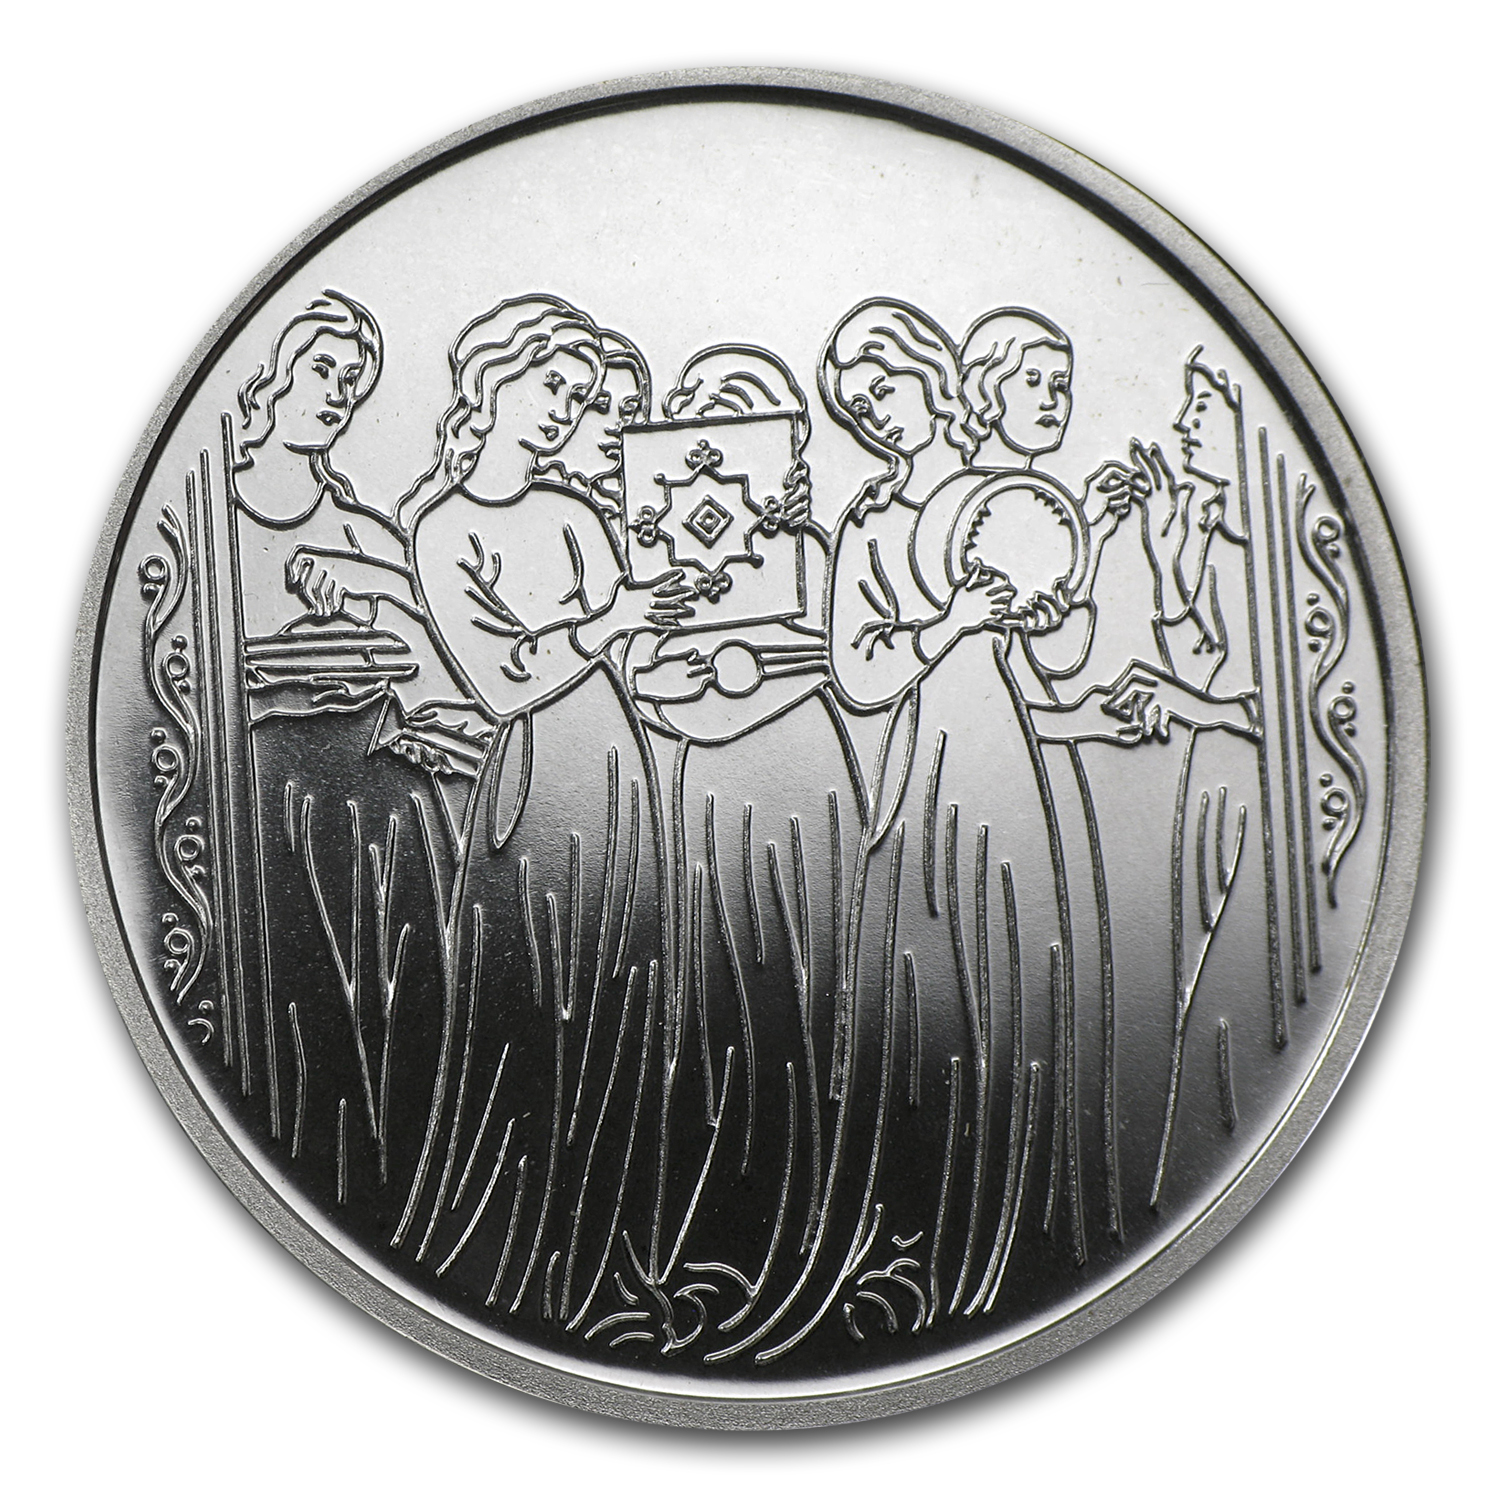 1996 Israel Miriam & the Women Proof-Like Silver 1 NIS Coin